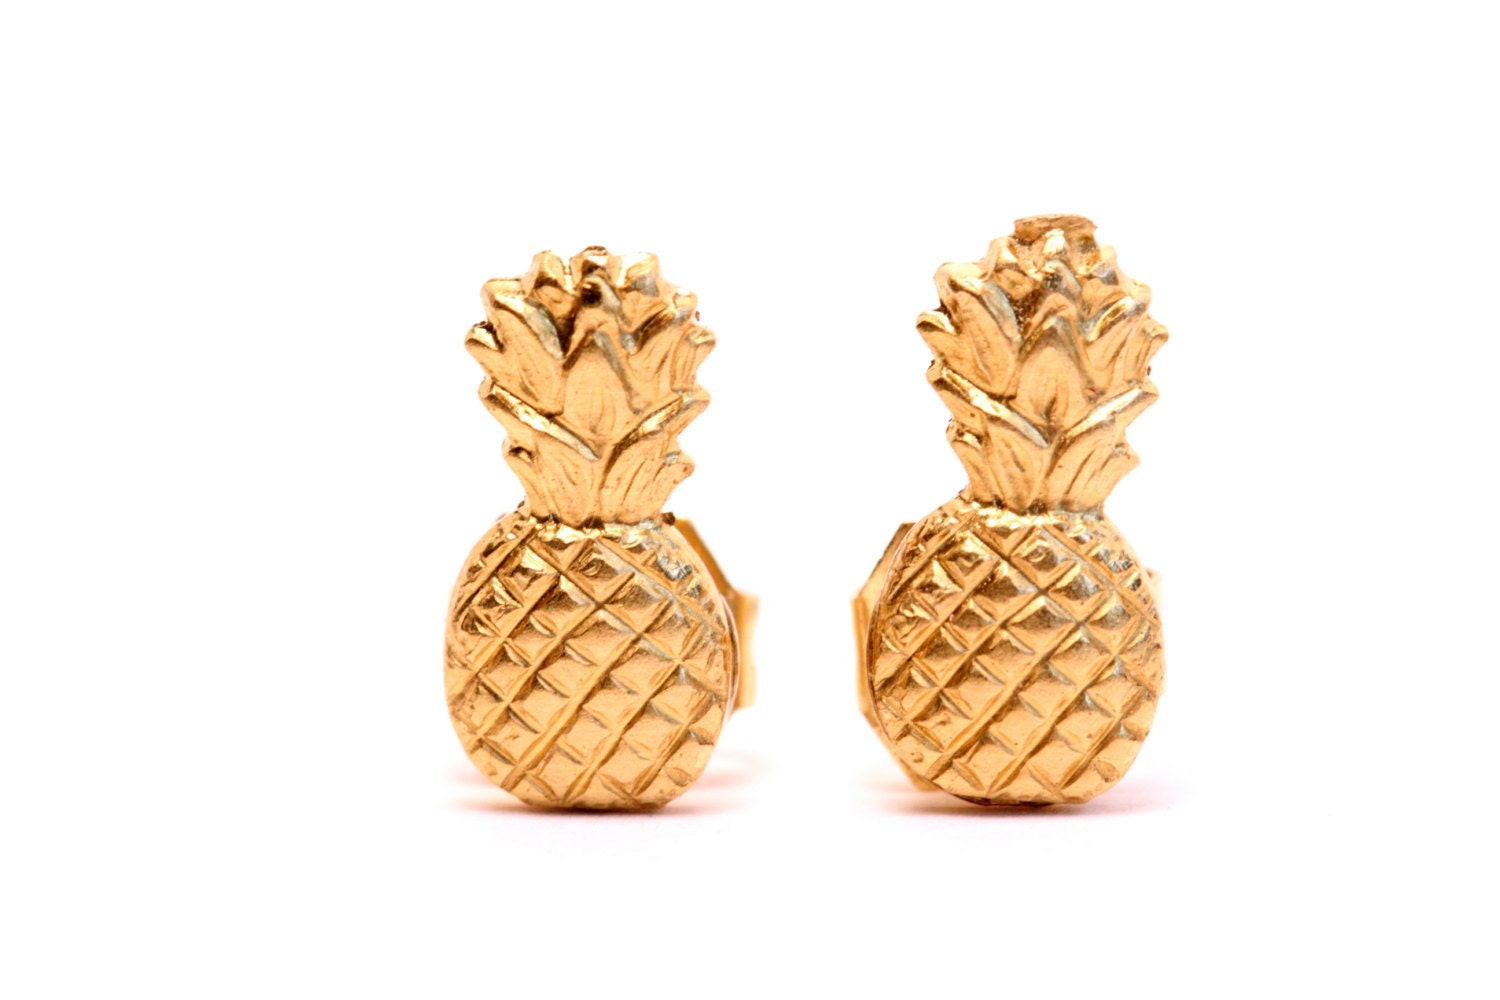 nations pineapple earrings pi earring marine pip fit stud details ls layer products kris